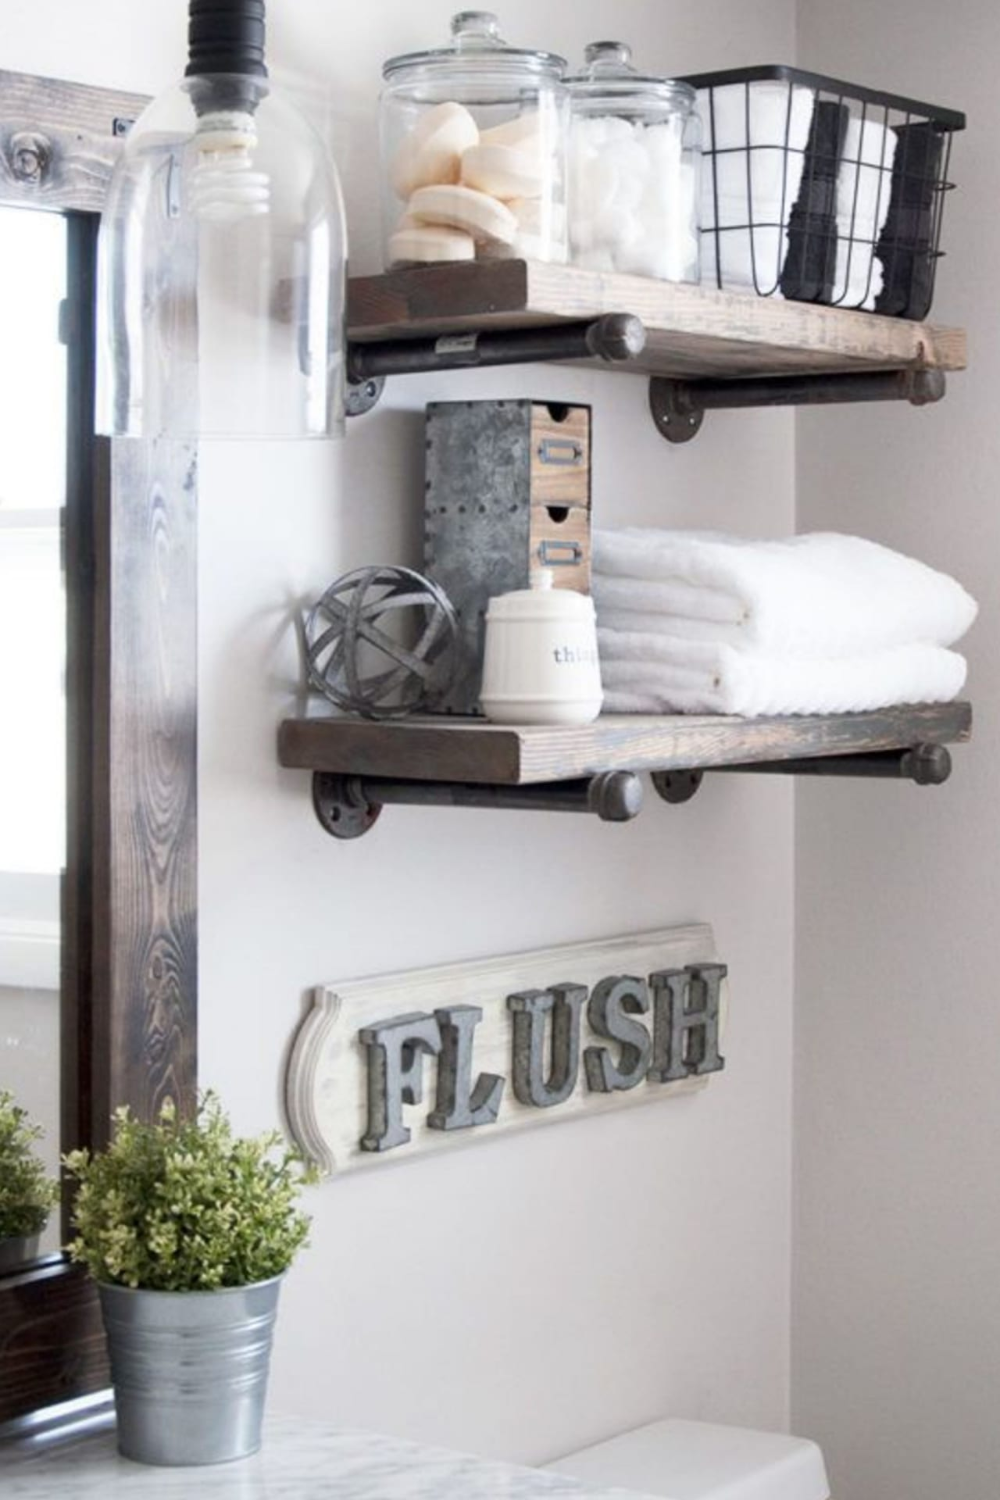 Bathroom Shelves Beautiful And Easy Diy Bathroom Space Saver Shelving Ideas Bathroom Space Saver Bathroom Redecorating Small Bathroom Decor